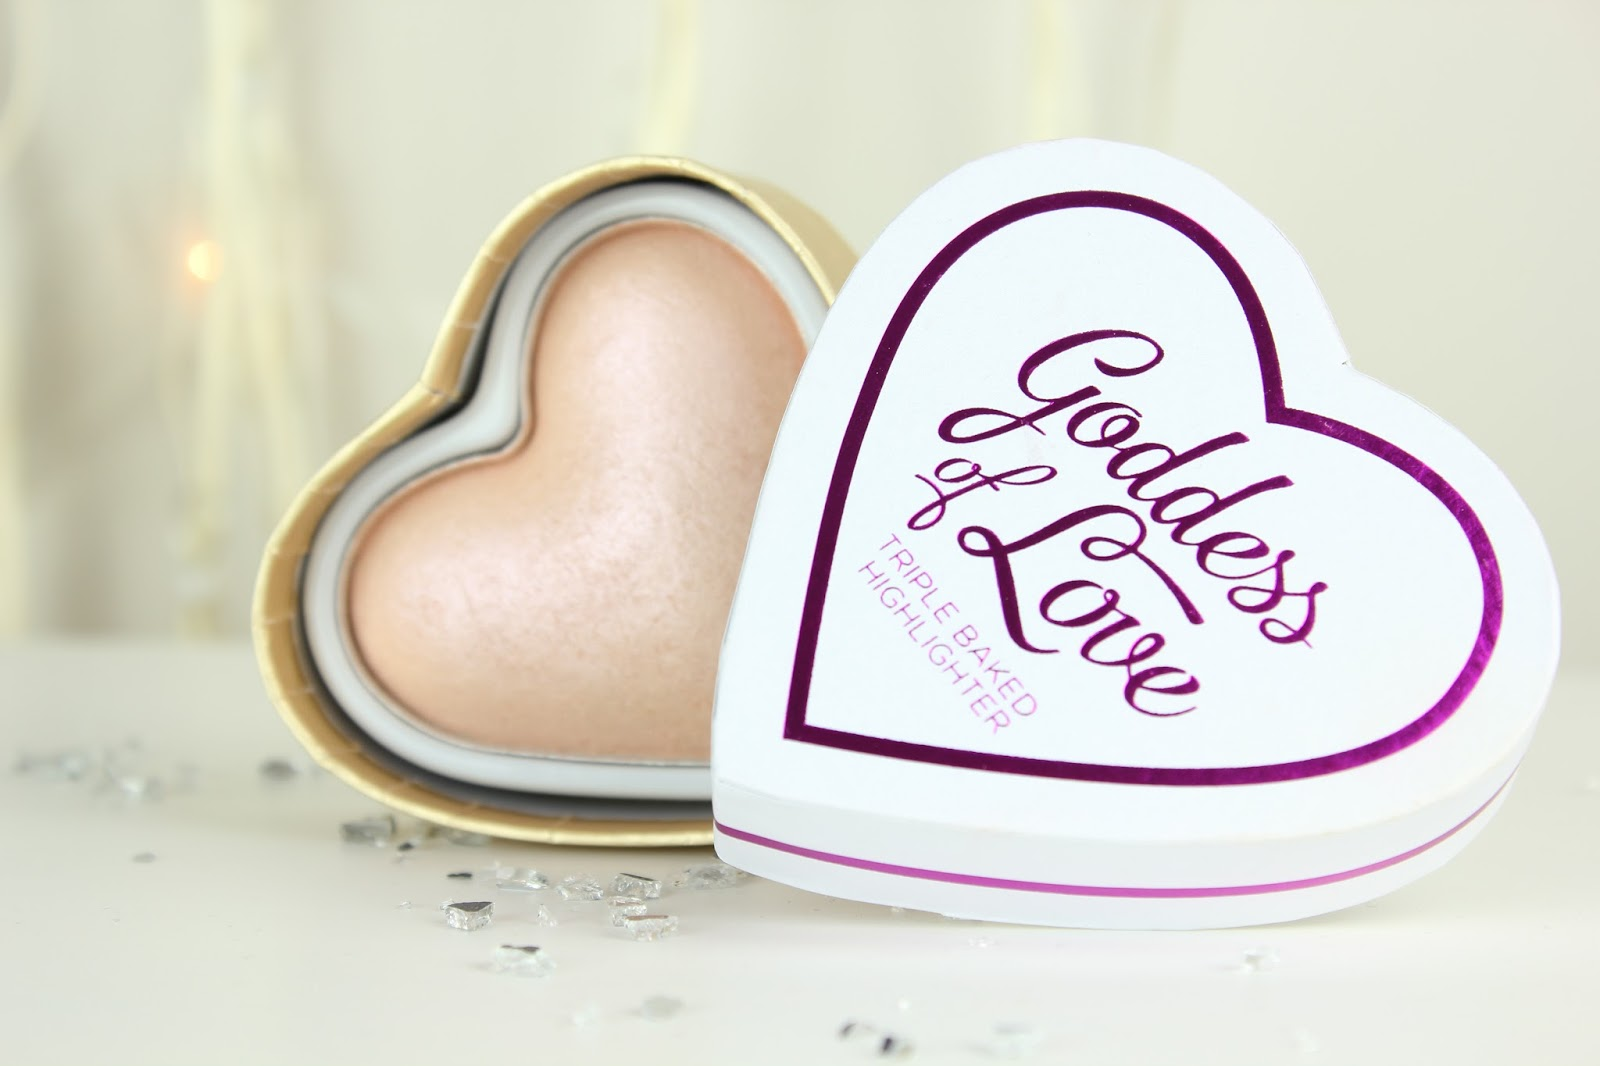 In this beautiful heart shaped box packaging we have a gorgeous iridescent pale champagne highlighter, triple baked to shimmery perfection.